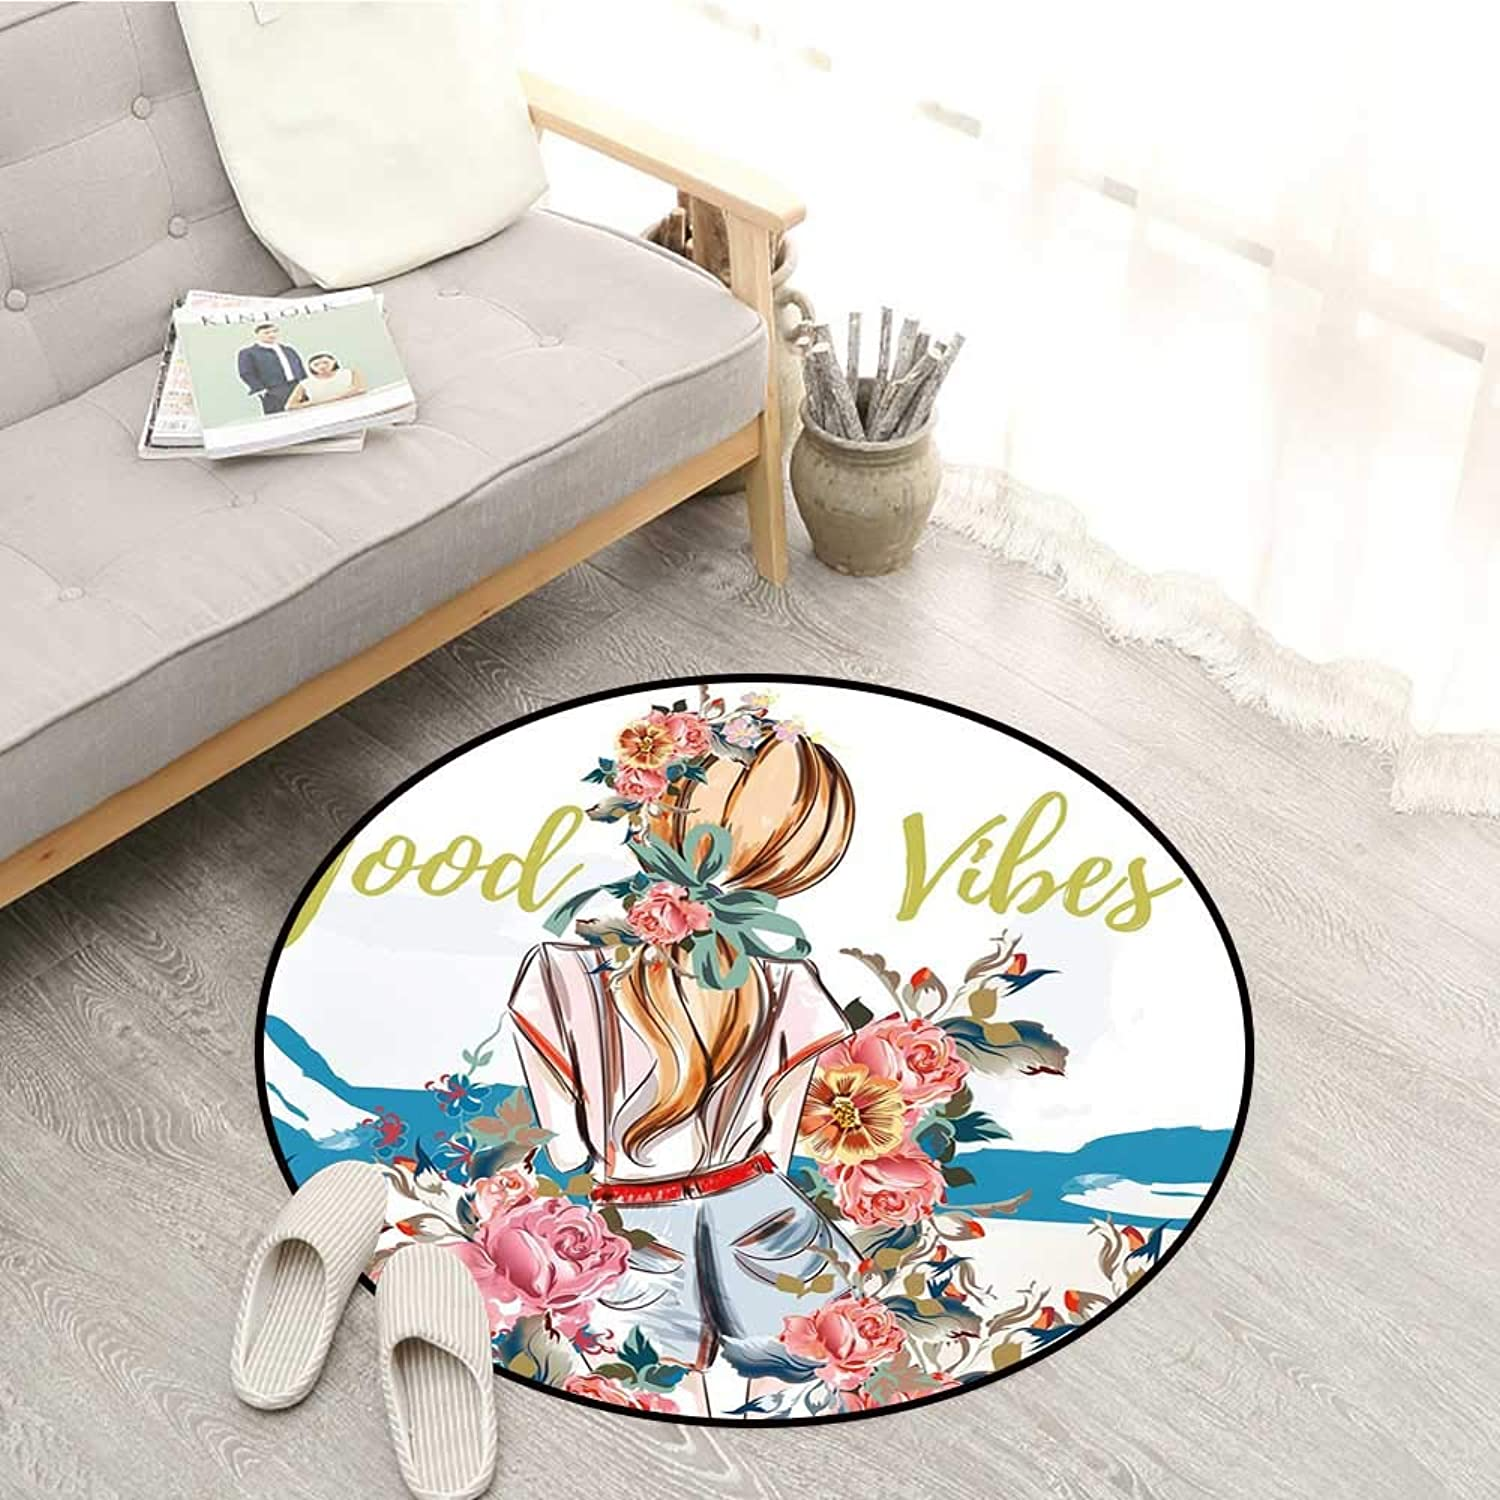 Good Vibes Carpets Young Girl Standing Back with Flourishing pinks Abstract Floral Artful Feminine Sofa Coffee Table Mat 4'3  Multicolor